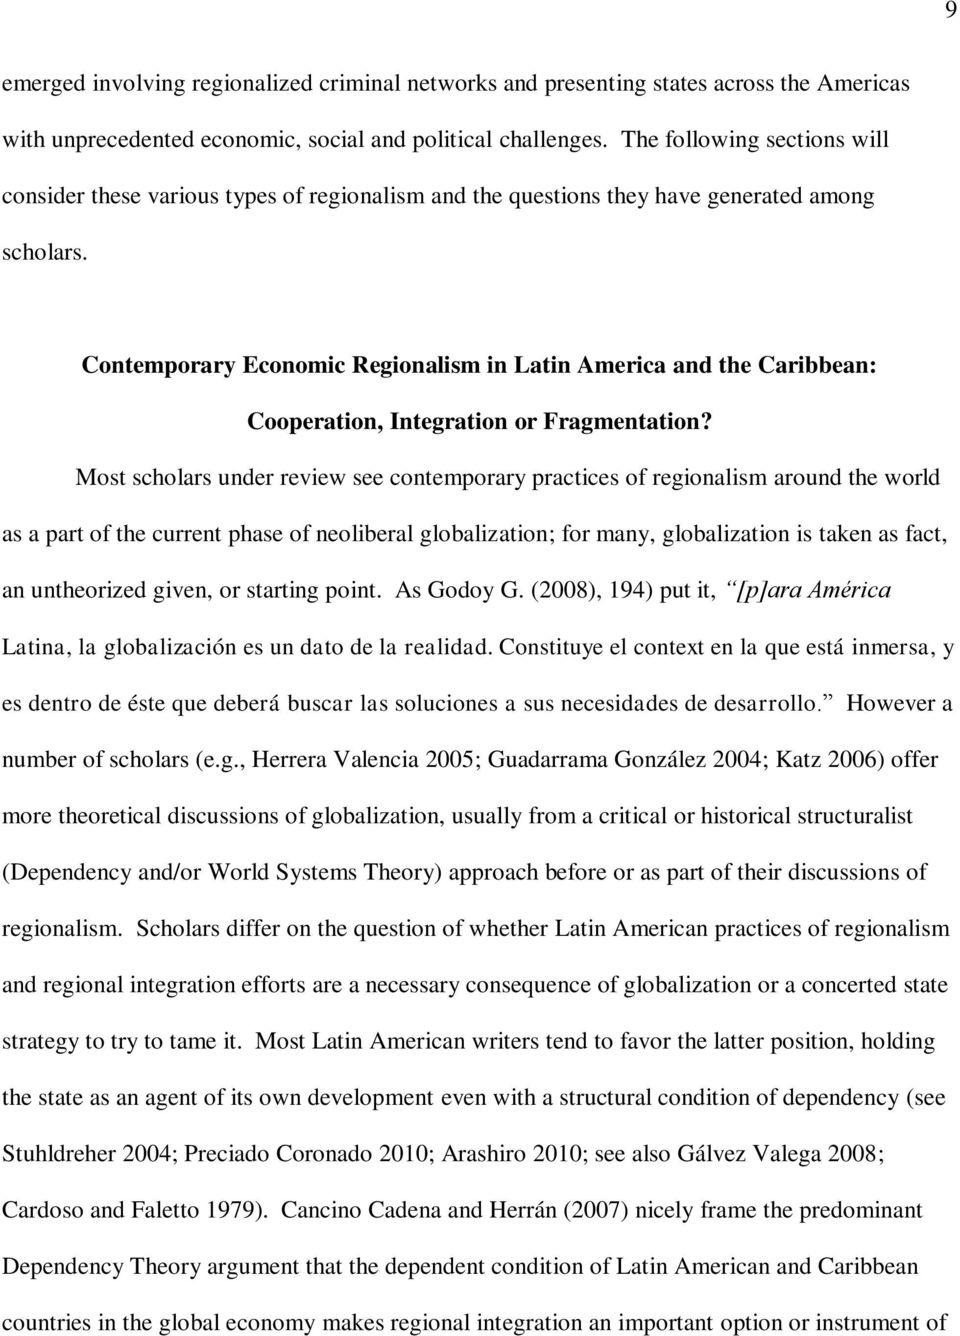 Contemporary Economic Regionalism in Latin America and the Caribbean: Cooperation, Integration or Fragmentation?